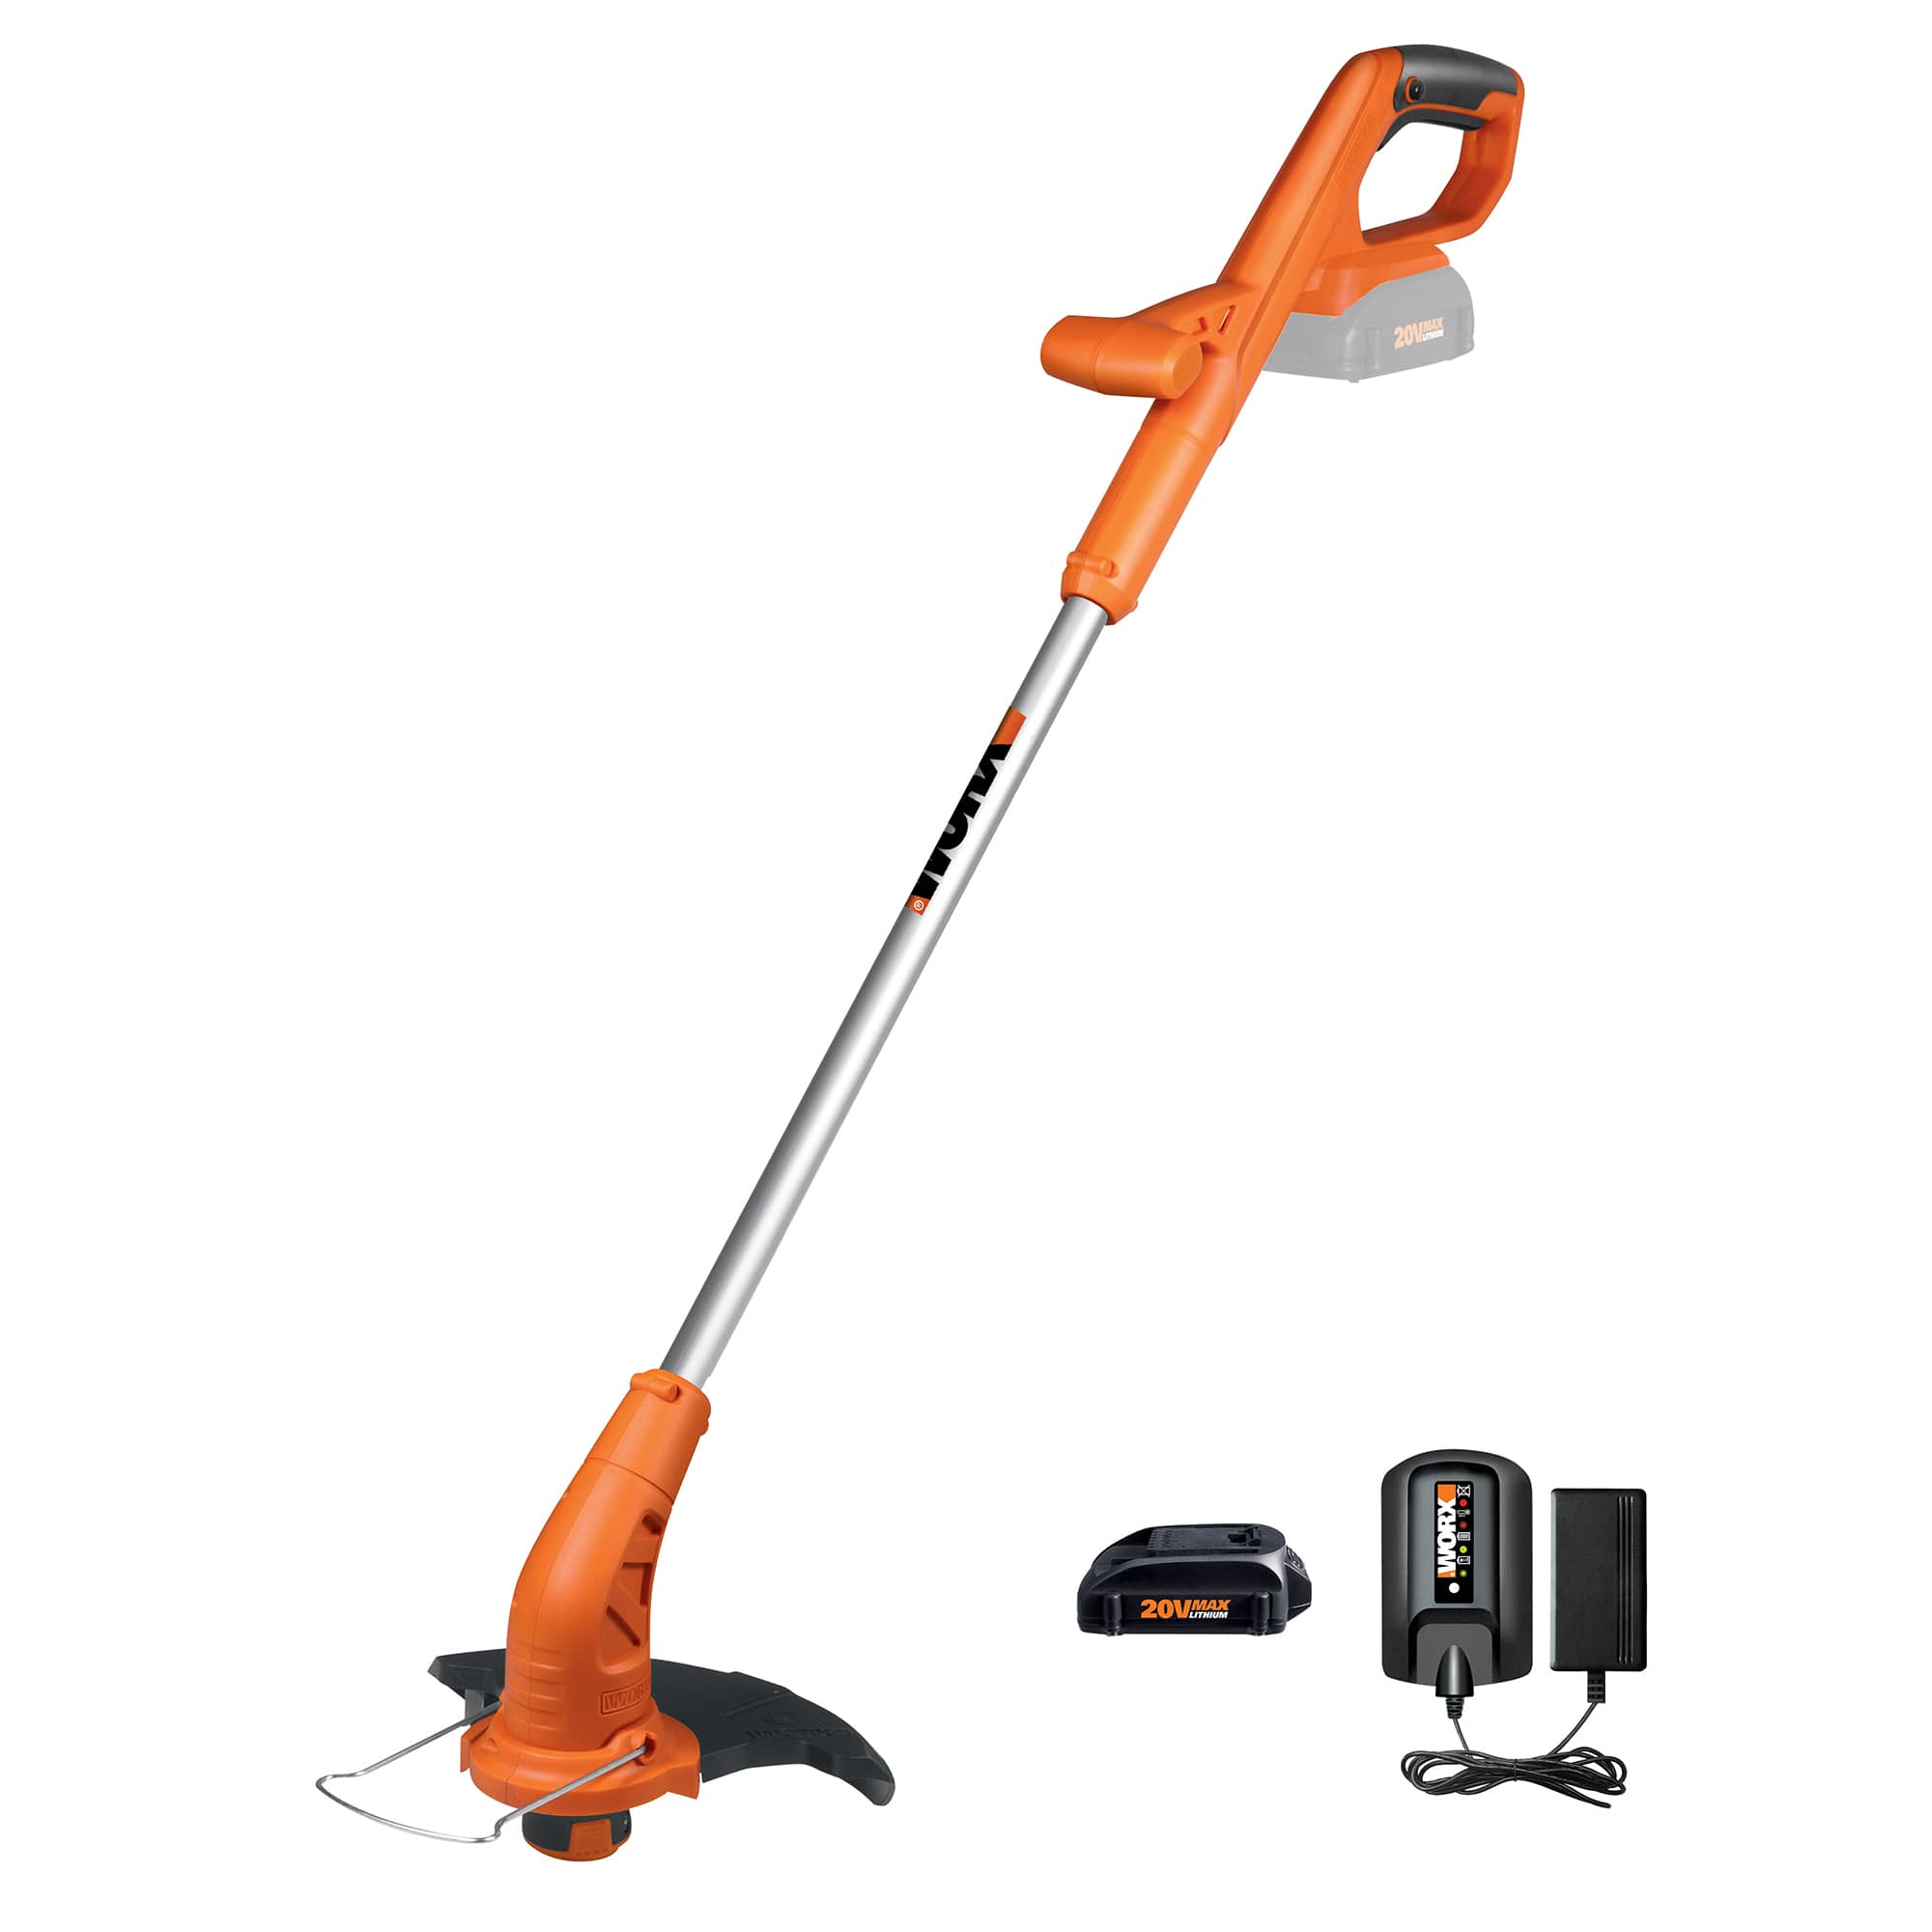 "WORX WG154 Edger 20V 10"" Cordless String Trimmer $46.50 + Free Shipping"